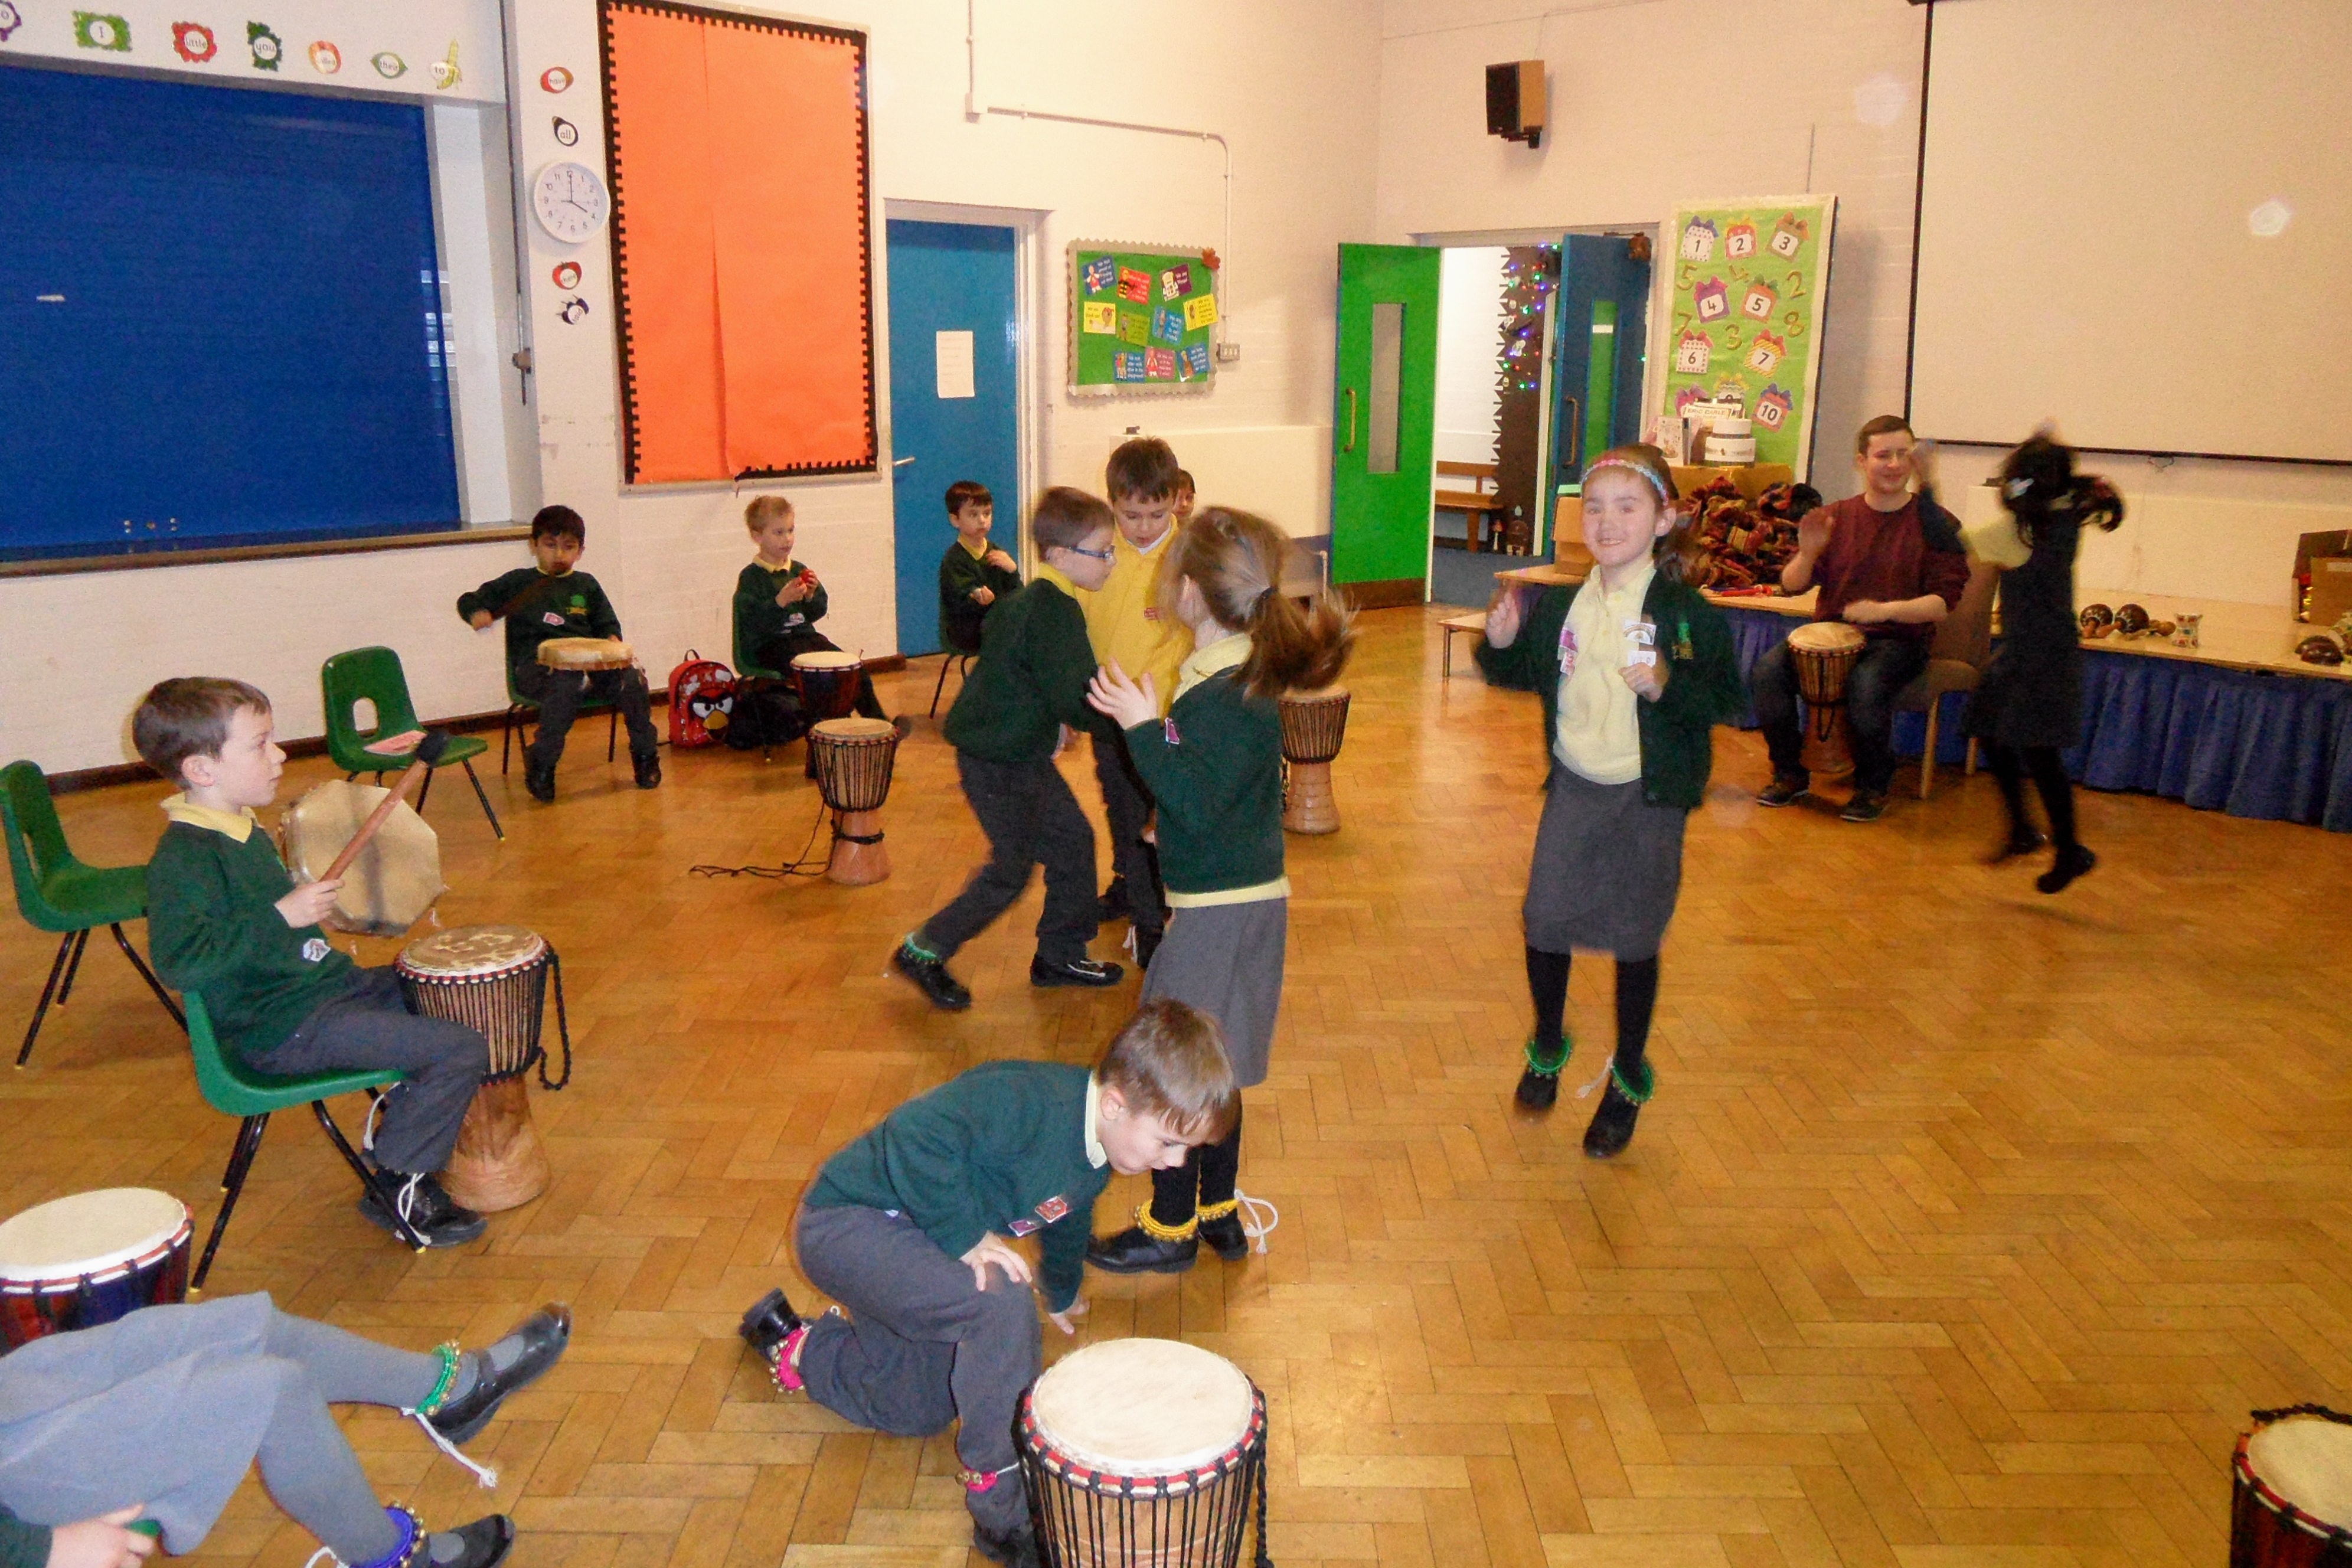 Drumming and dancing